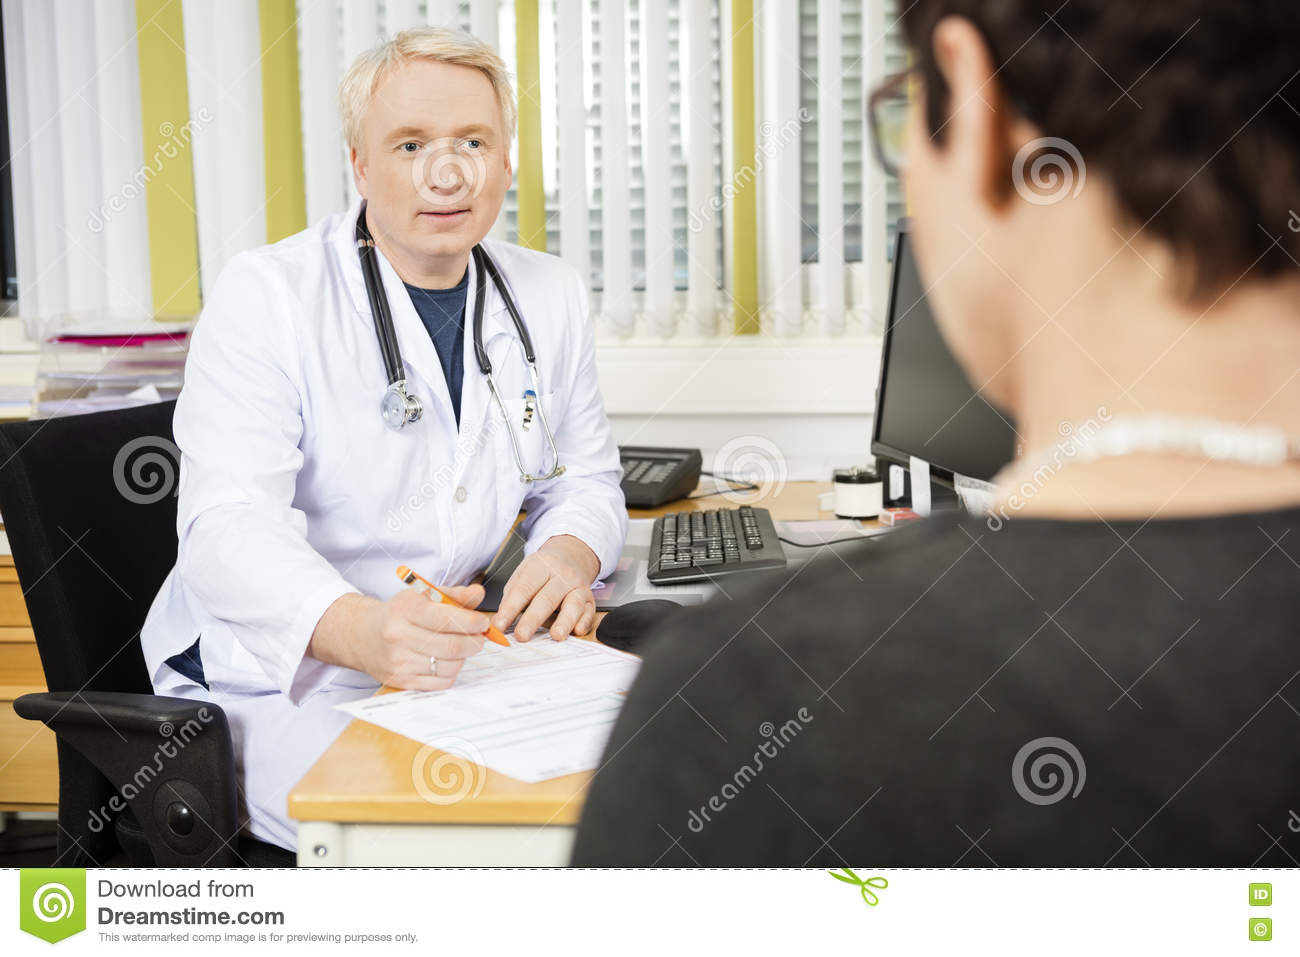 Male Doctor Writing Prescription For Female Patient At Desk